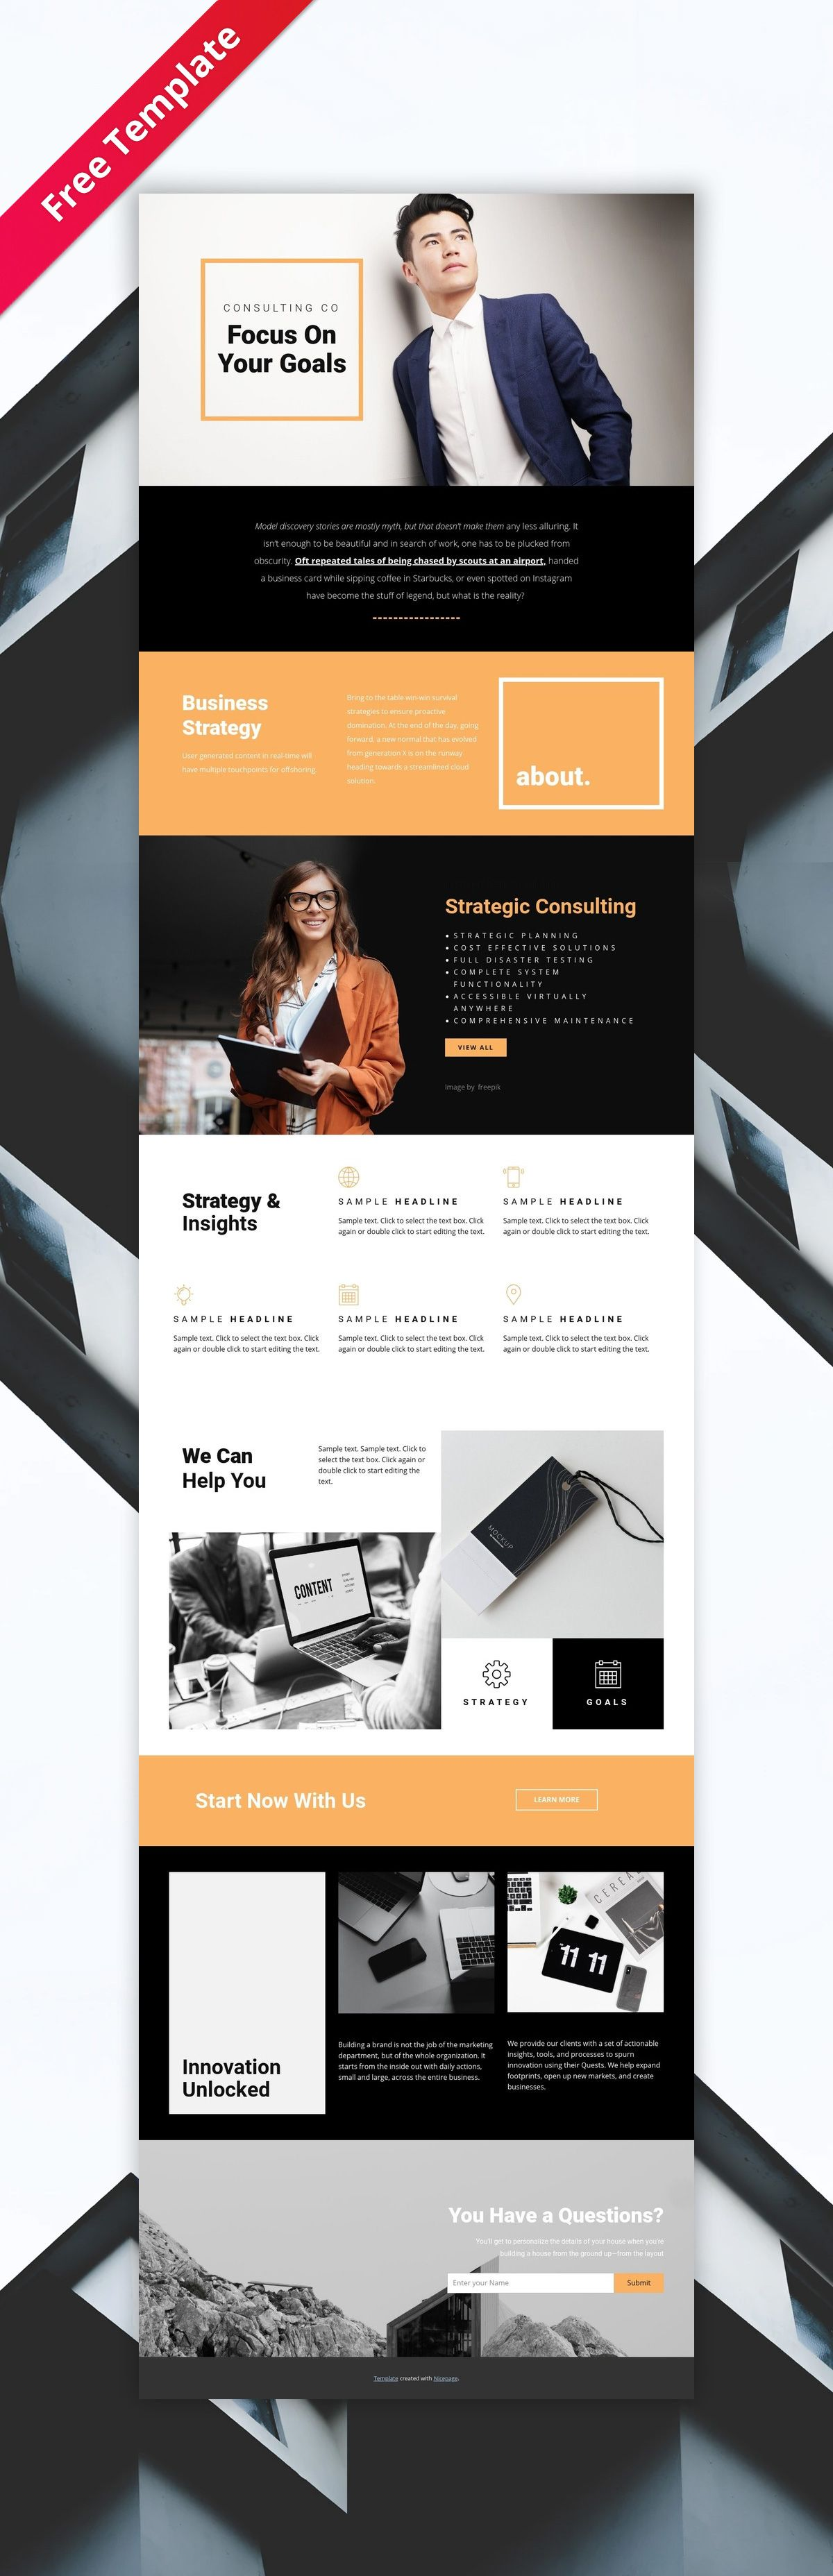 Free Template By Nicepage Builder Free Html Templates Html Website Templates Website Template